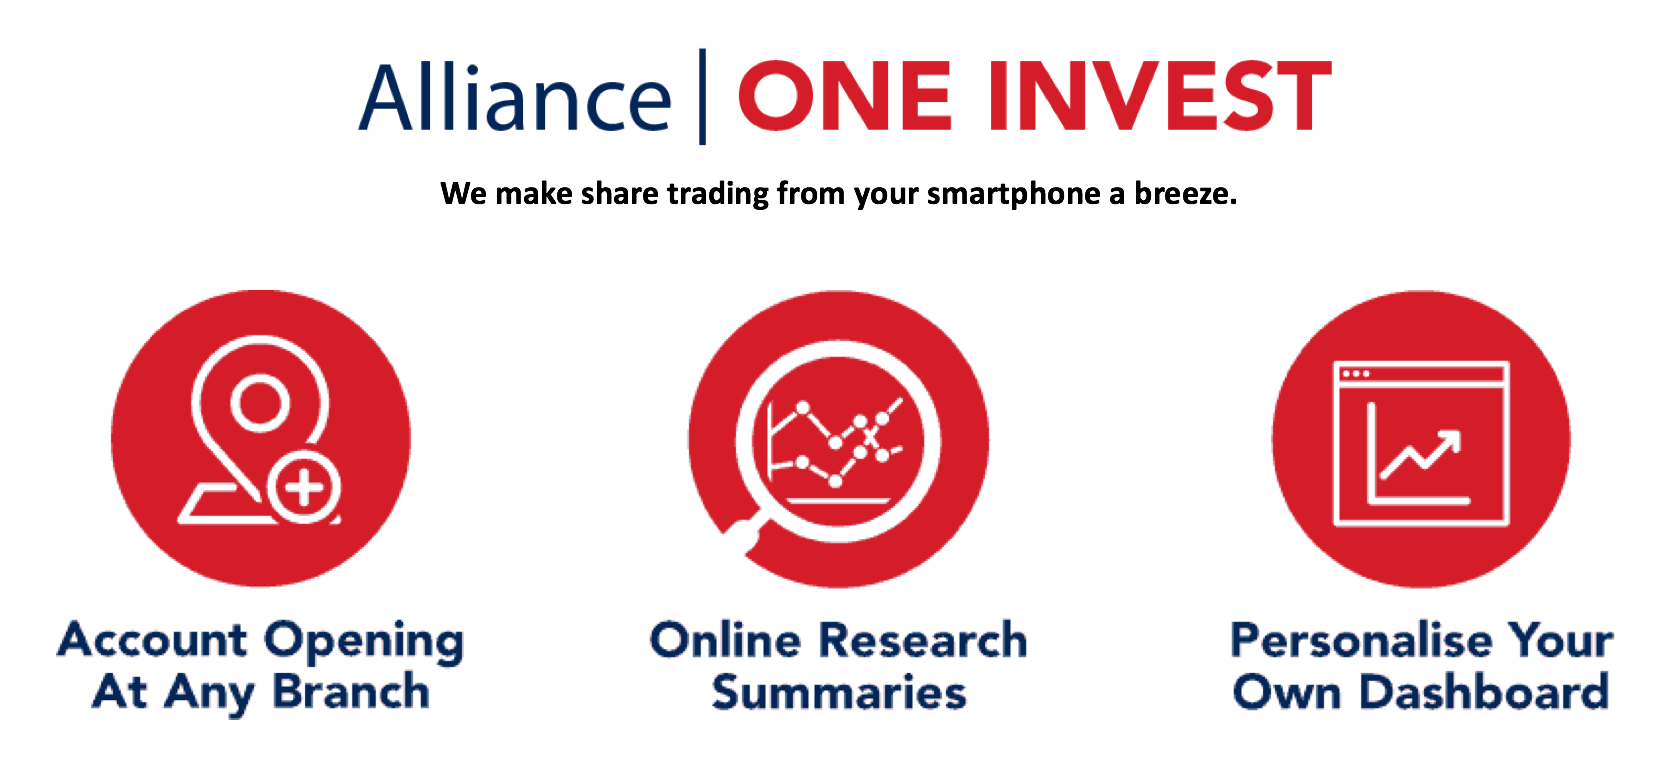 Alliance One Invest